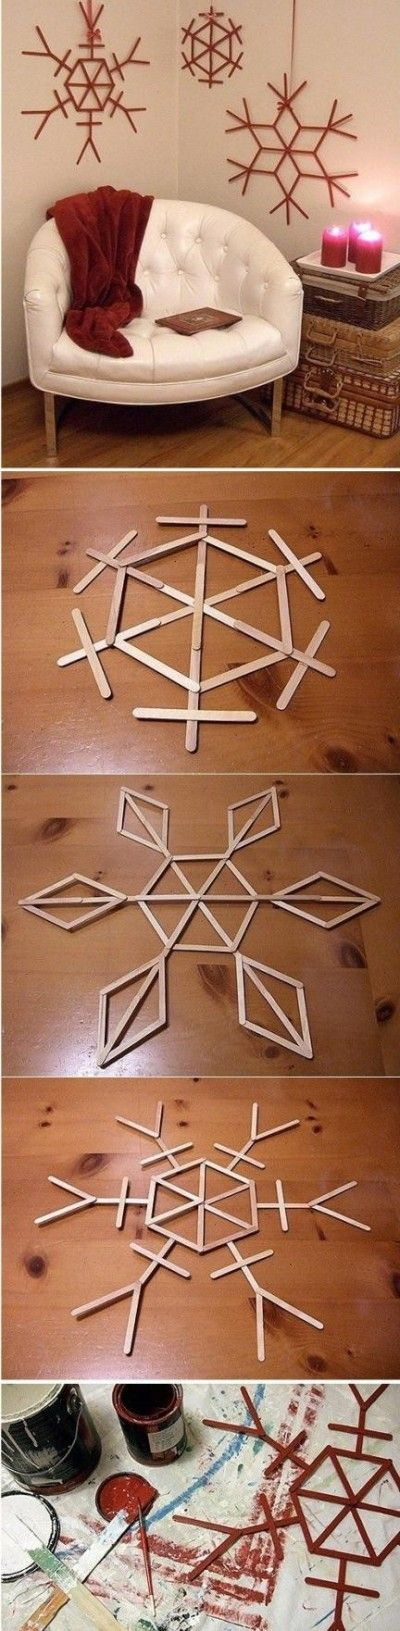 DIY snowflake wall decoration: would be so cute for dorm rooms during the holidays!